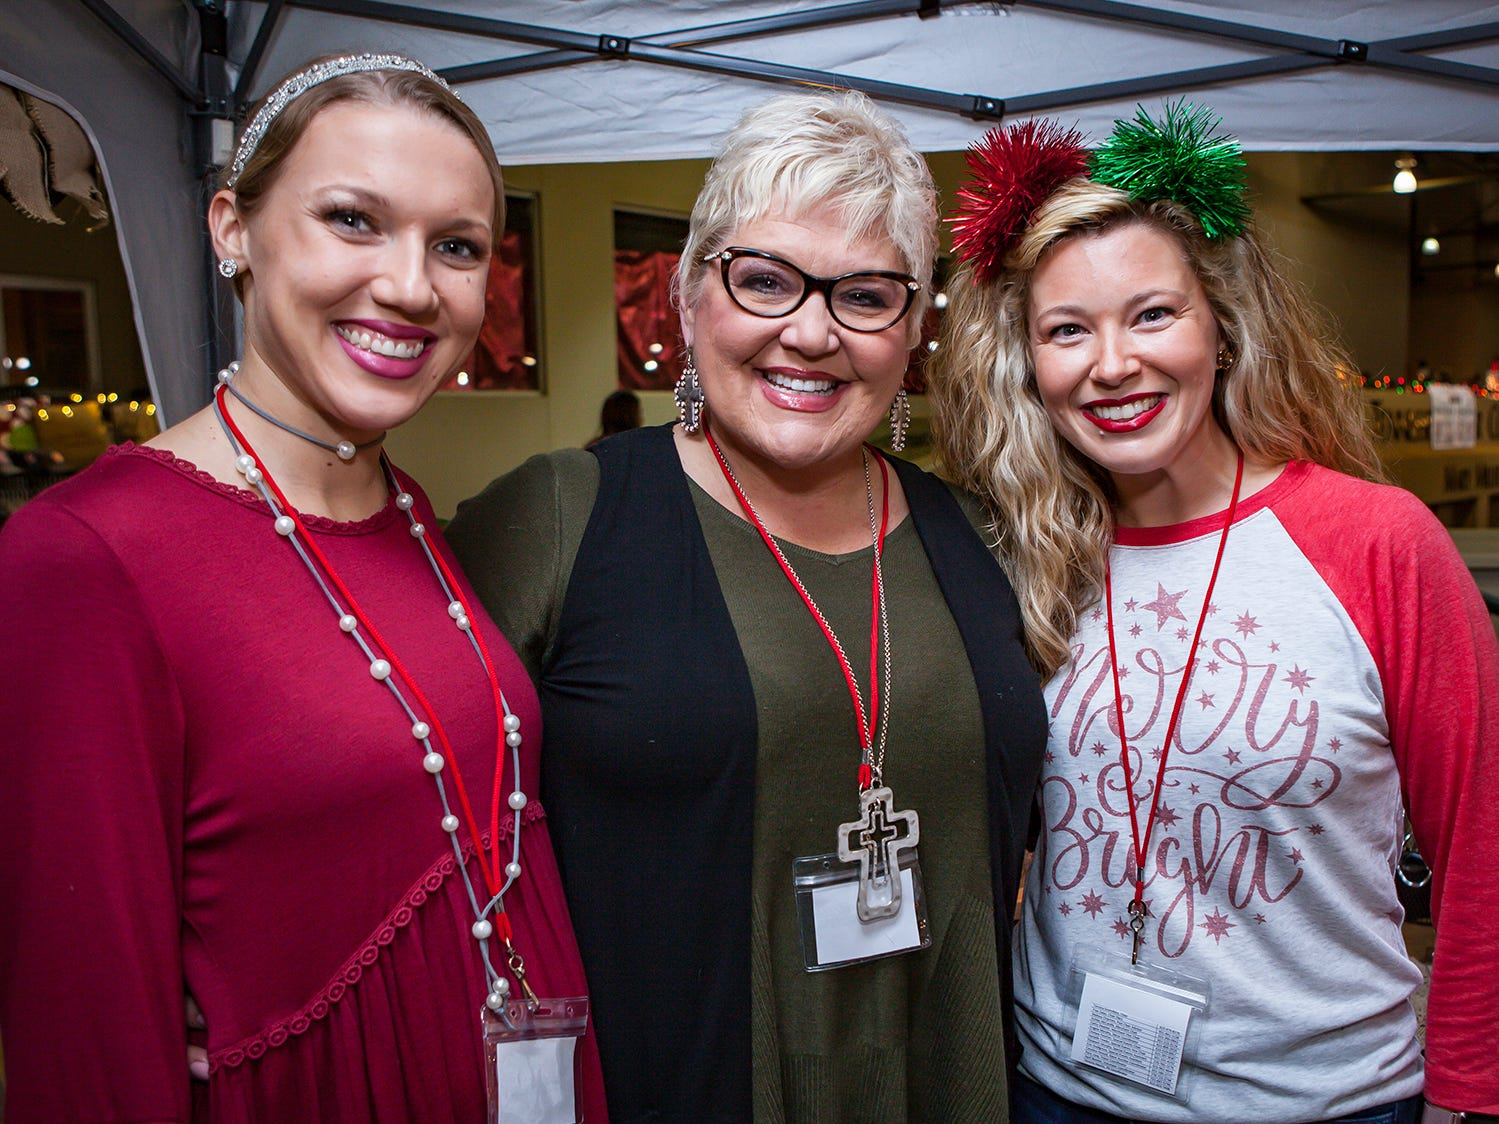 Shelby Steger, Sherri Miller and Chelsea Fancher at Mistletoe & Martinis, the preview party for Junior League of Murfreesboro's 2018 Hollyday Marketplace.